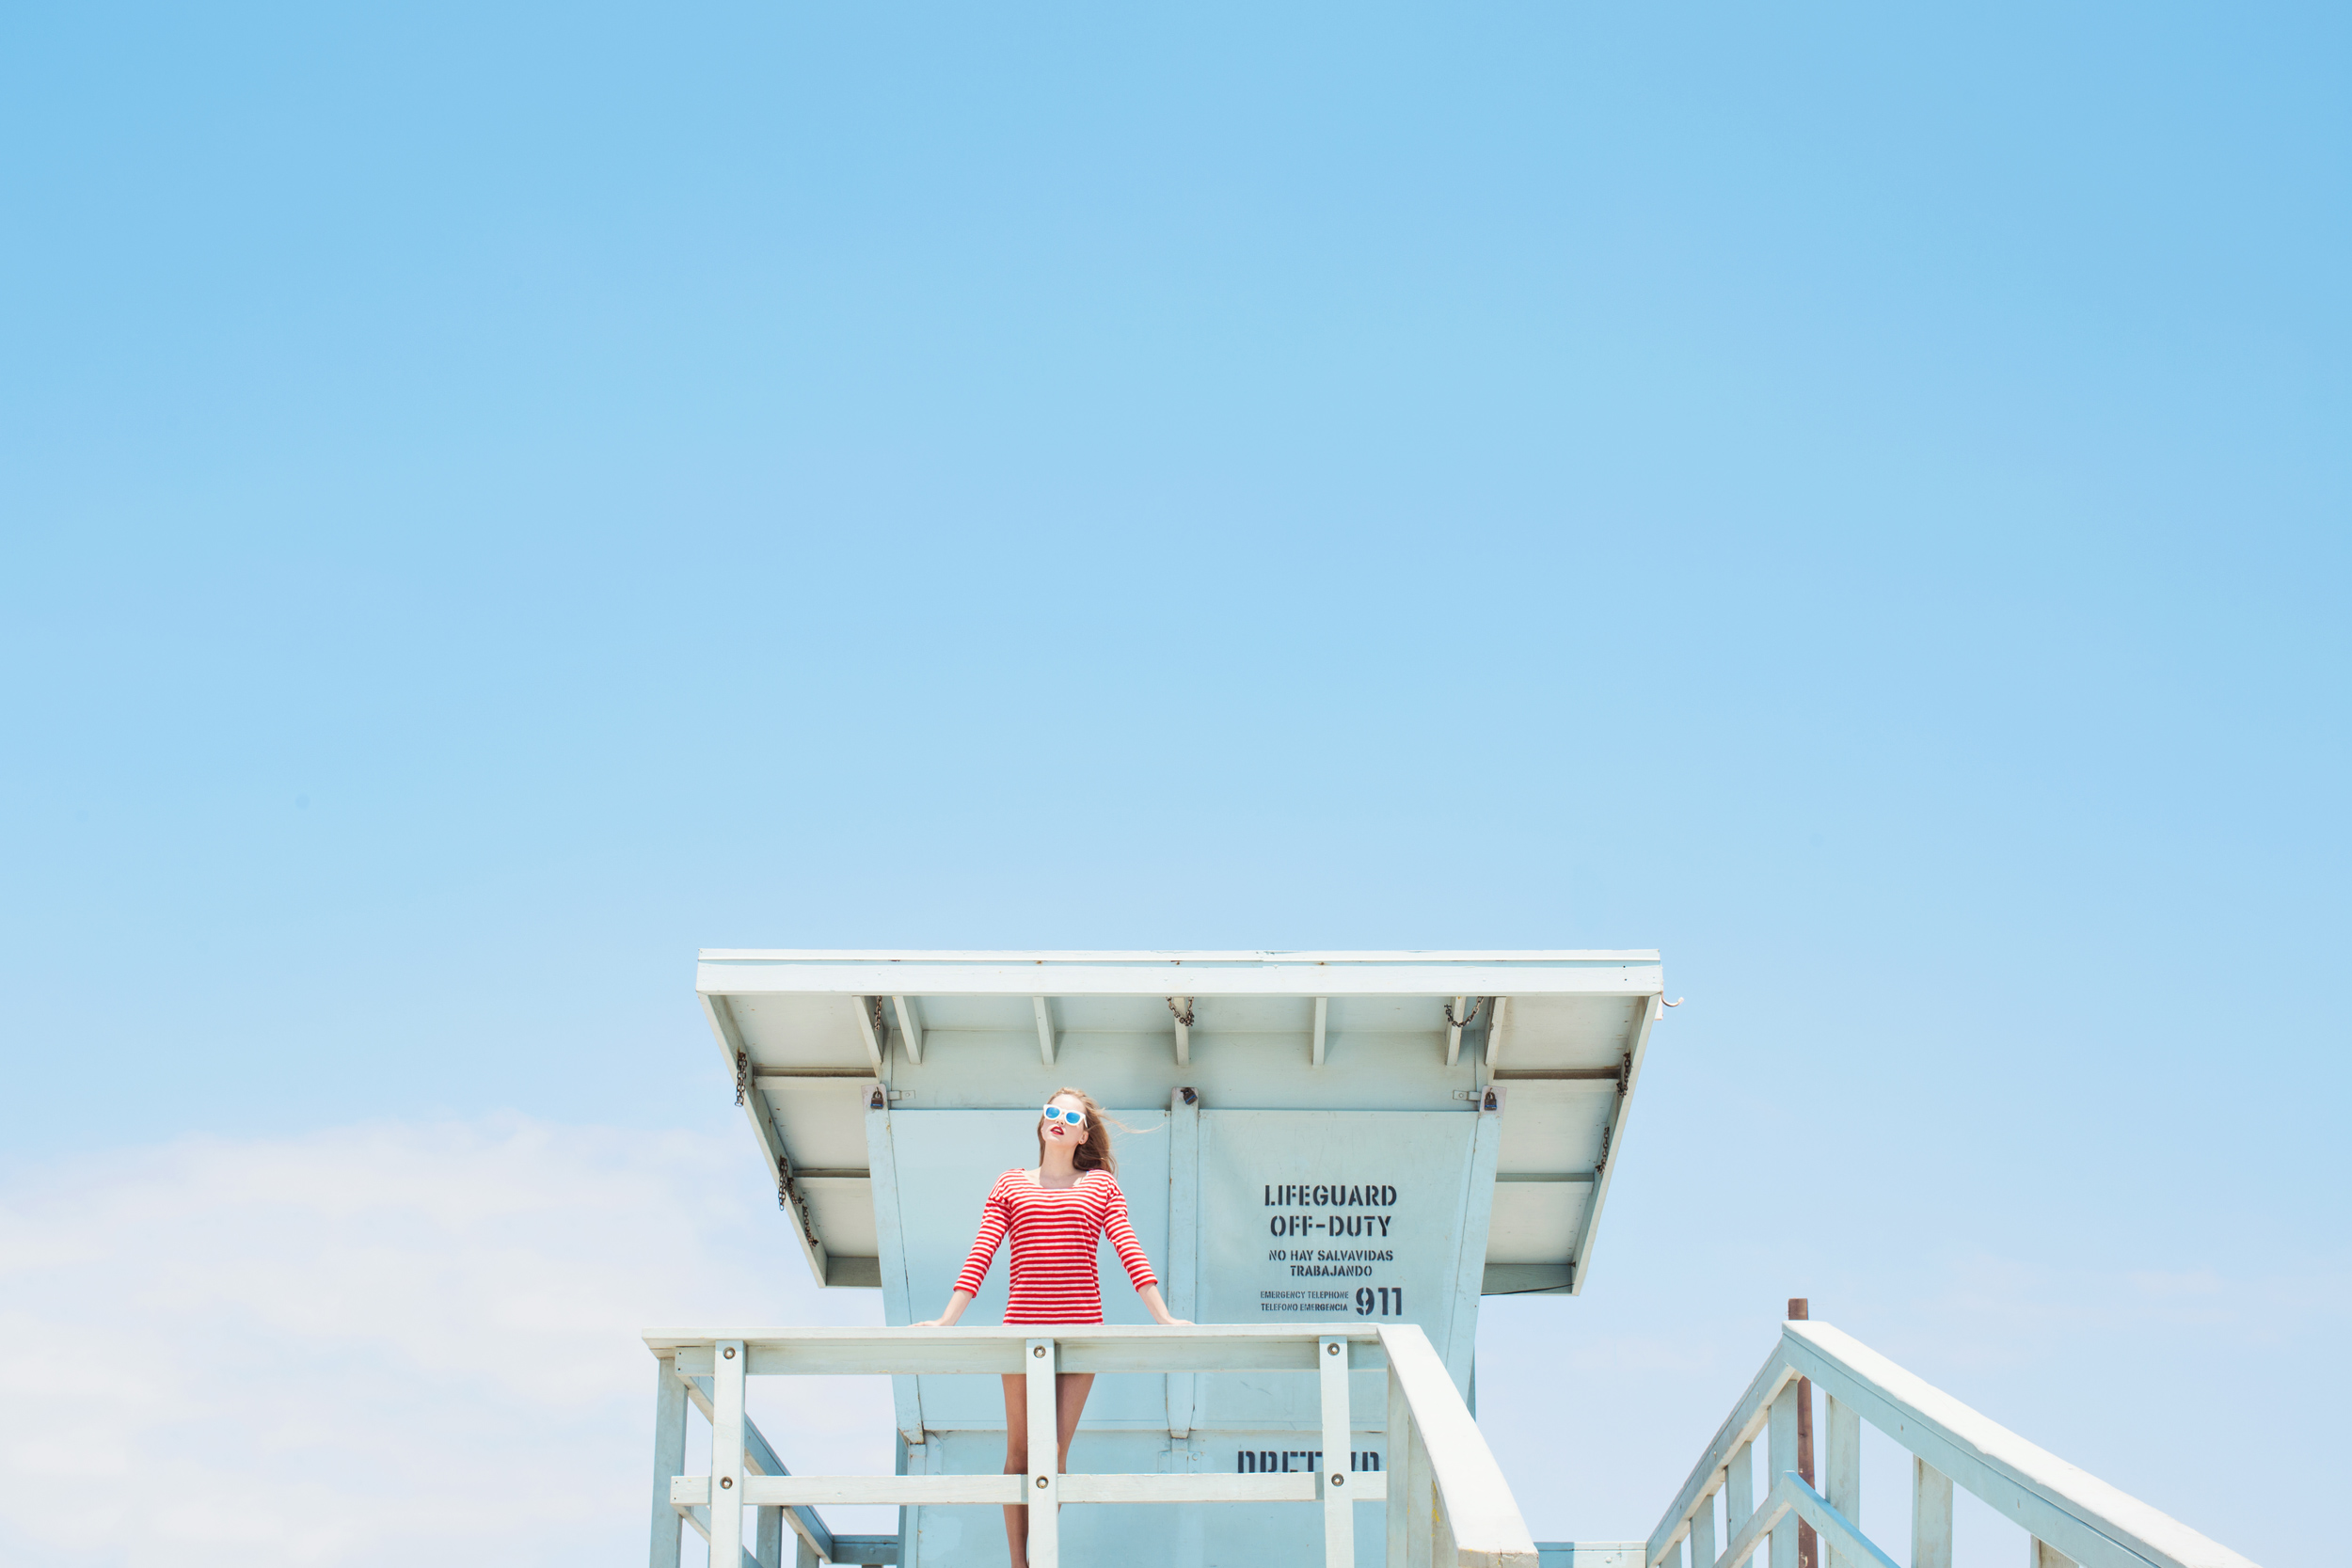 Girl standing on a lifeguard tower with sunglasses - Kim Genevieve Los Angeles Lifestyle Photographer